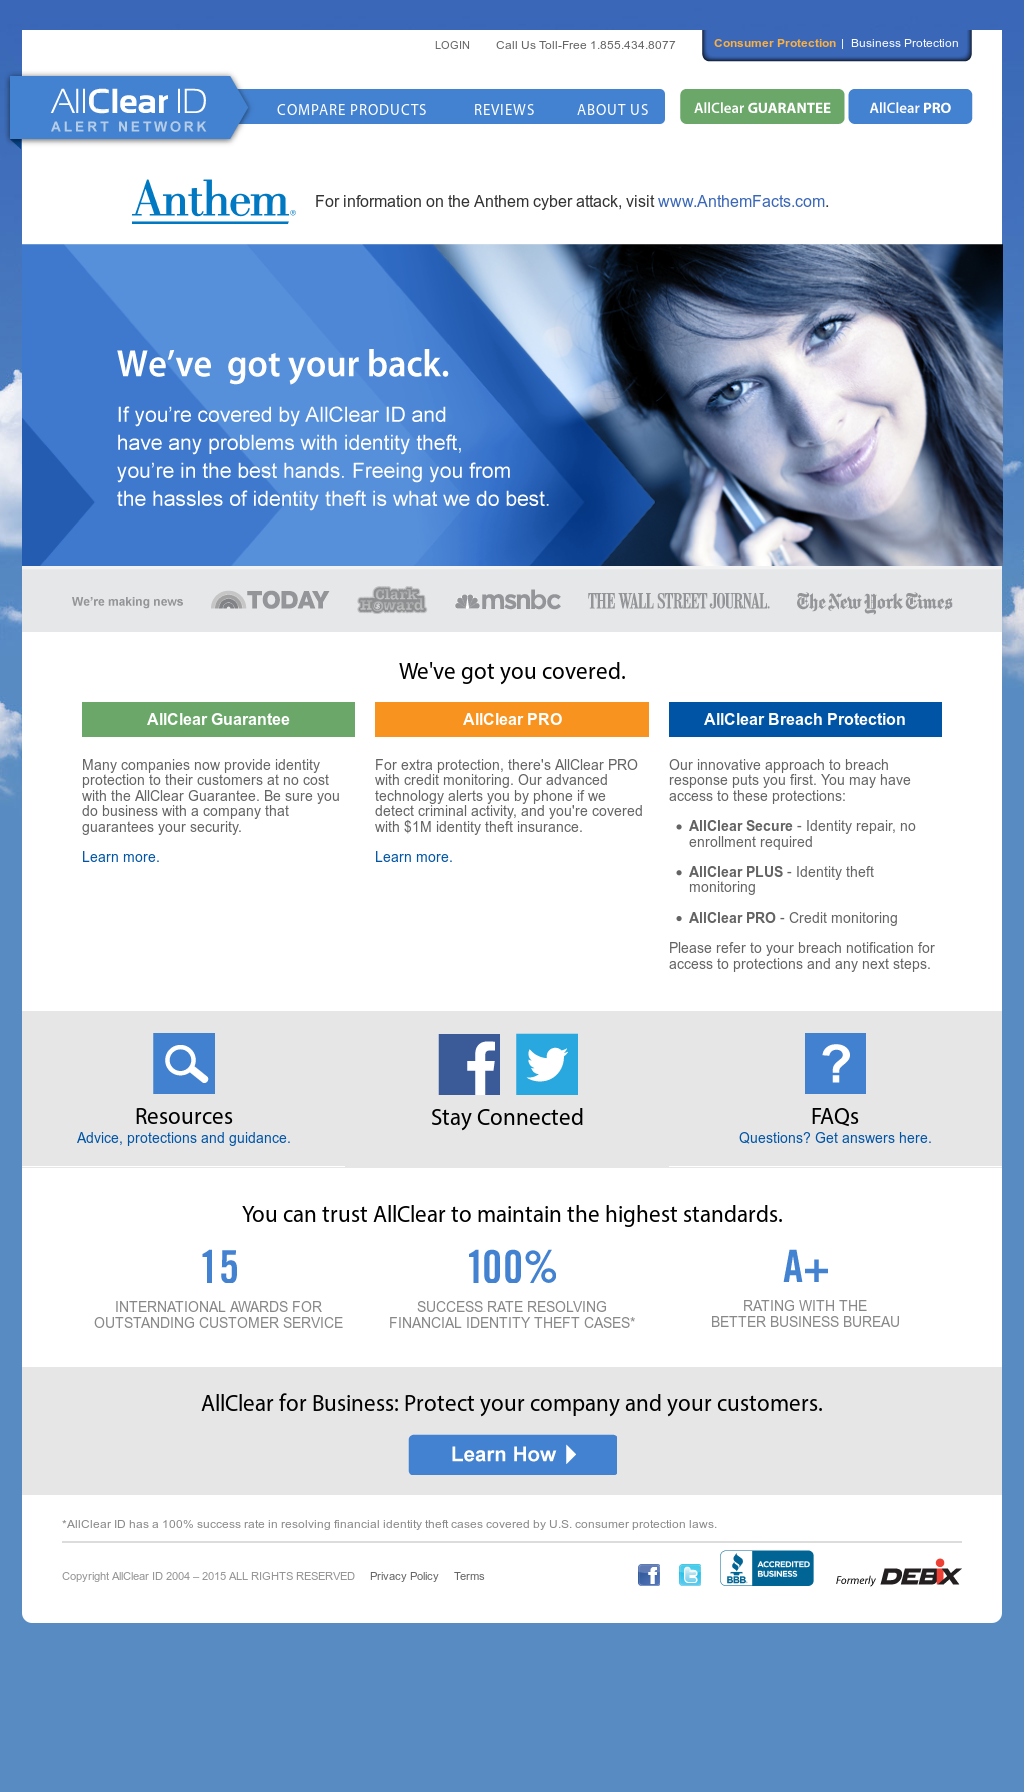 Allclear Id S Competitors Revenue Number Of Employees Funding Acquisitions News Owler Company Profile Allclear id is a little different than most id theft protection services we've used. allclear id s competitors revenue